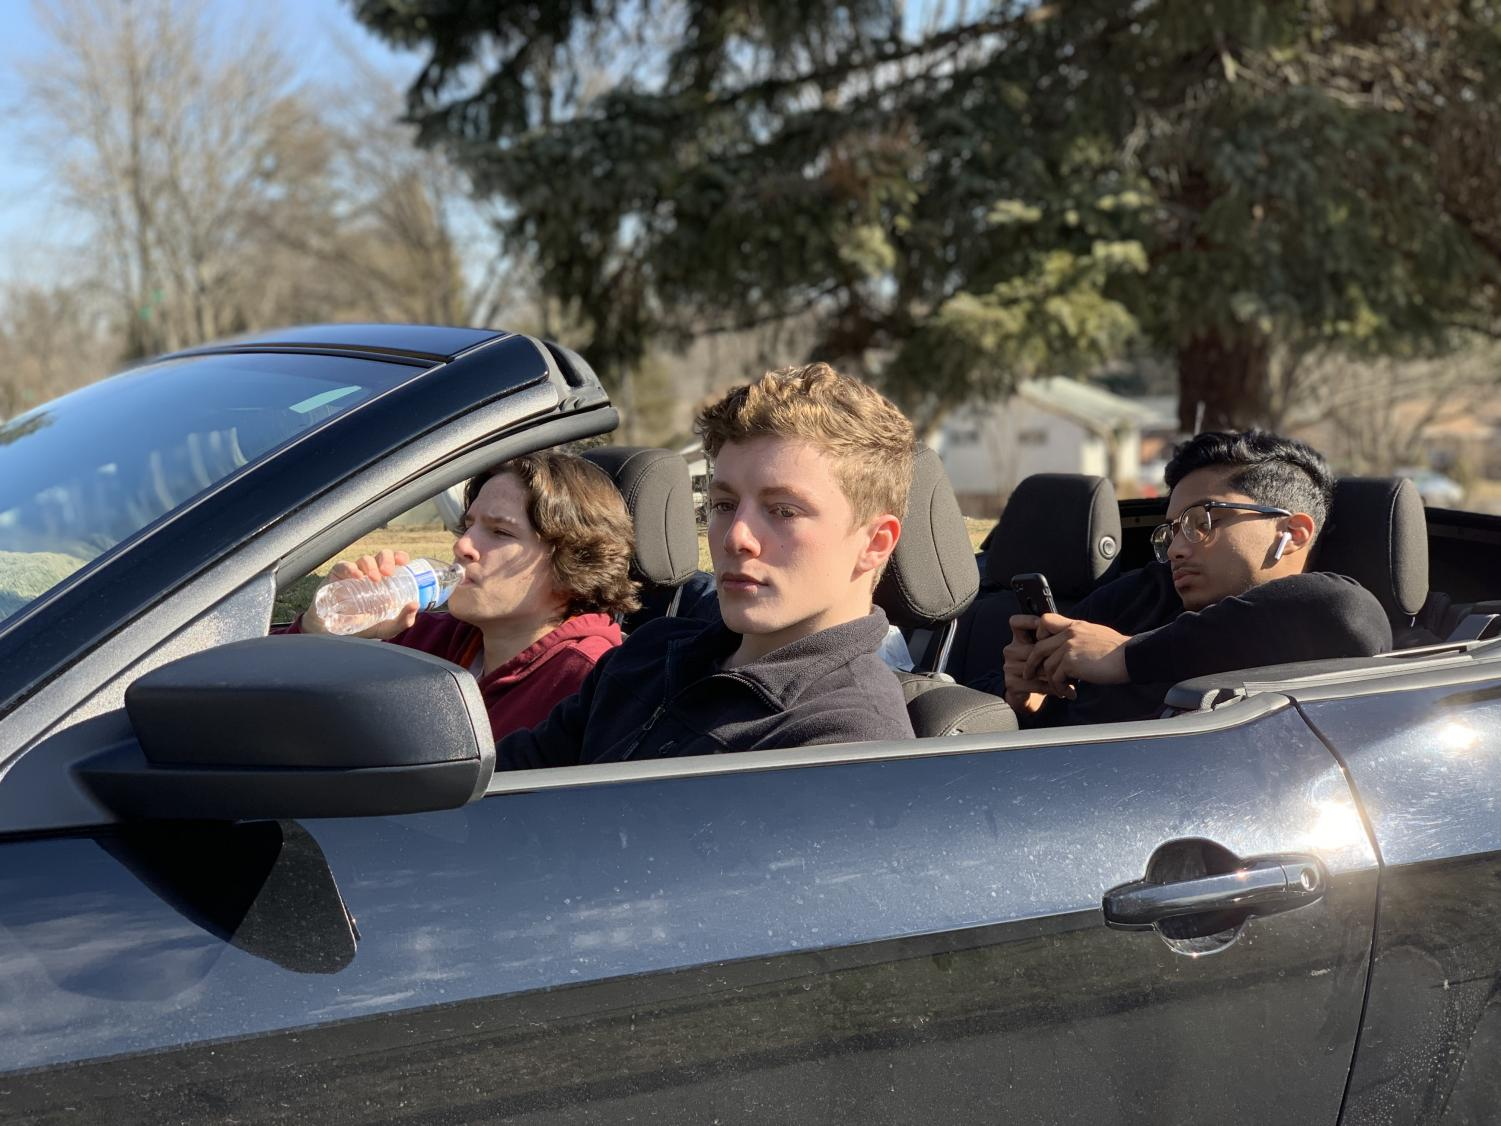 Senior James Gore commutes to school and back by driving. He is among the many teen drivers who have a school parking permit and at times, rides with friends.